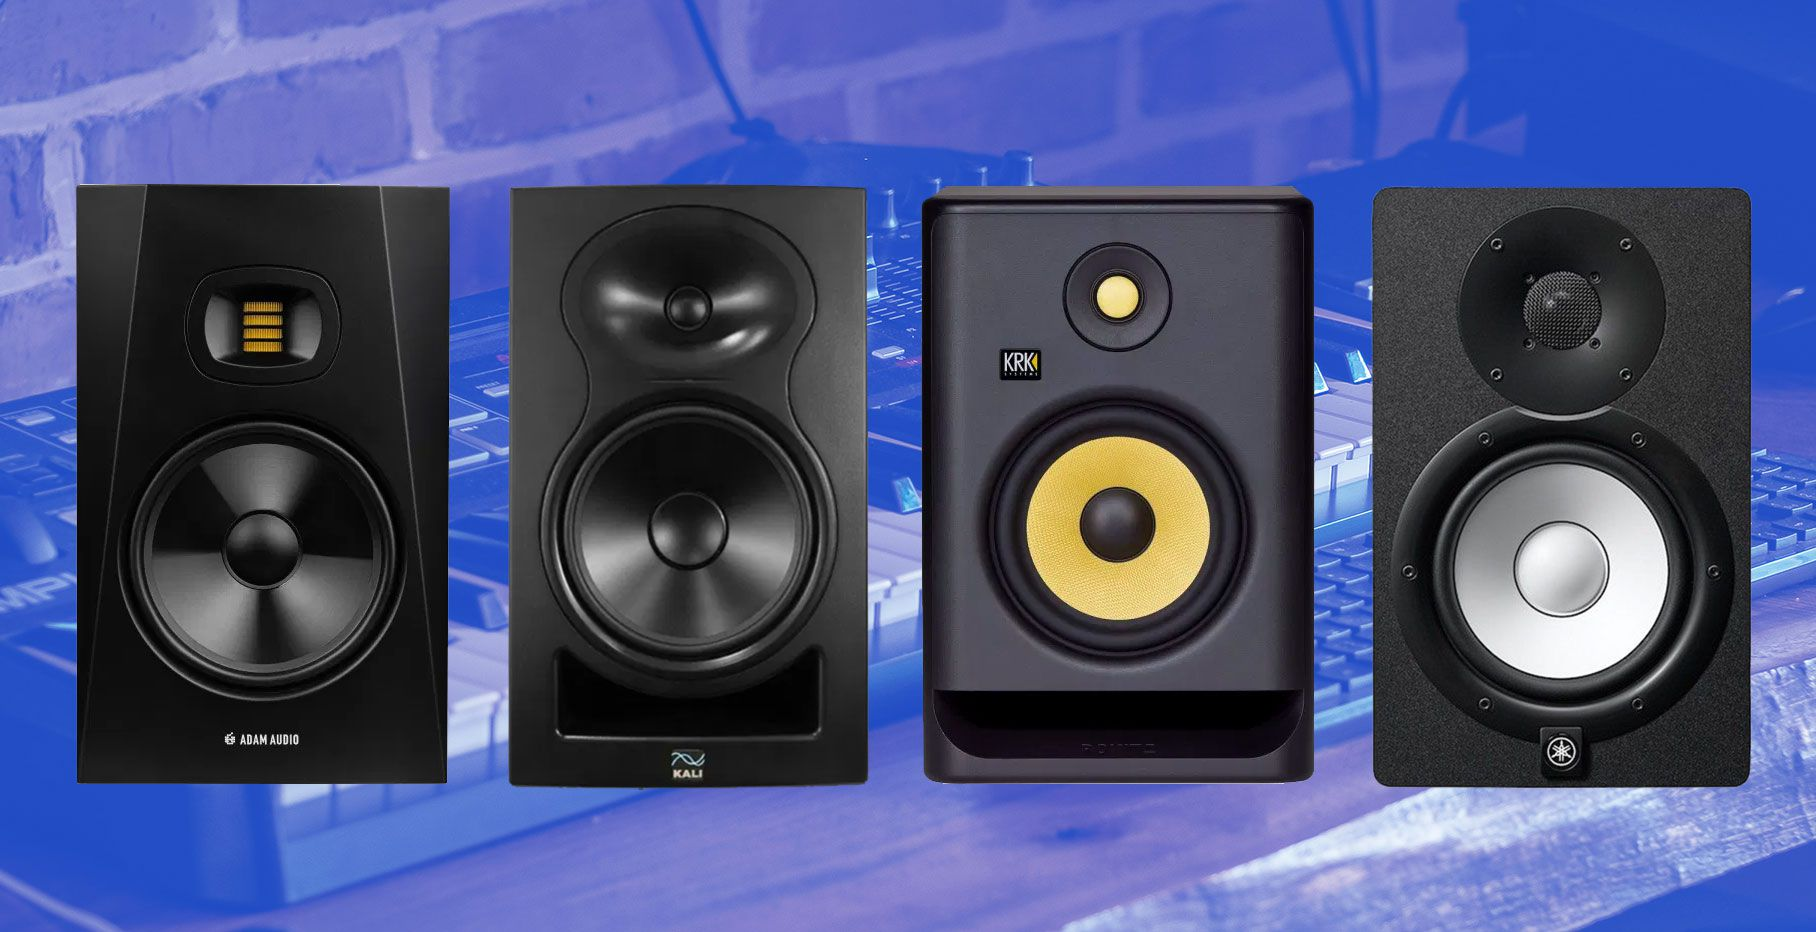 Best Affordable Studio Monitors For Your Home Setup: Our Picks